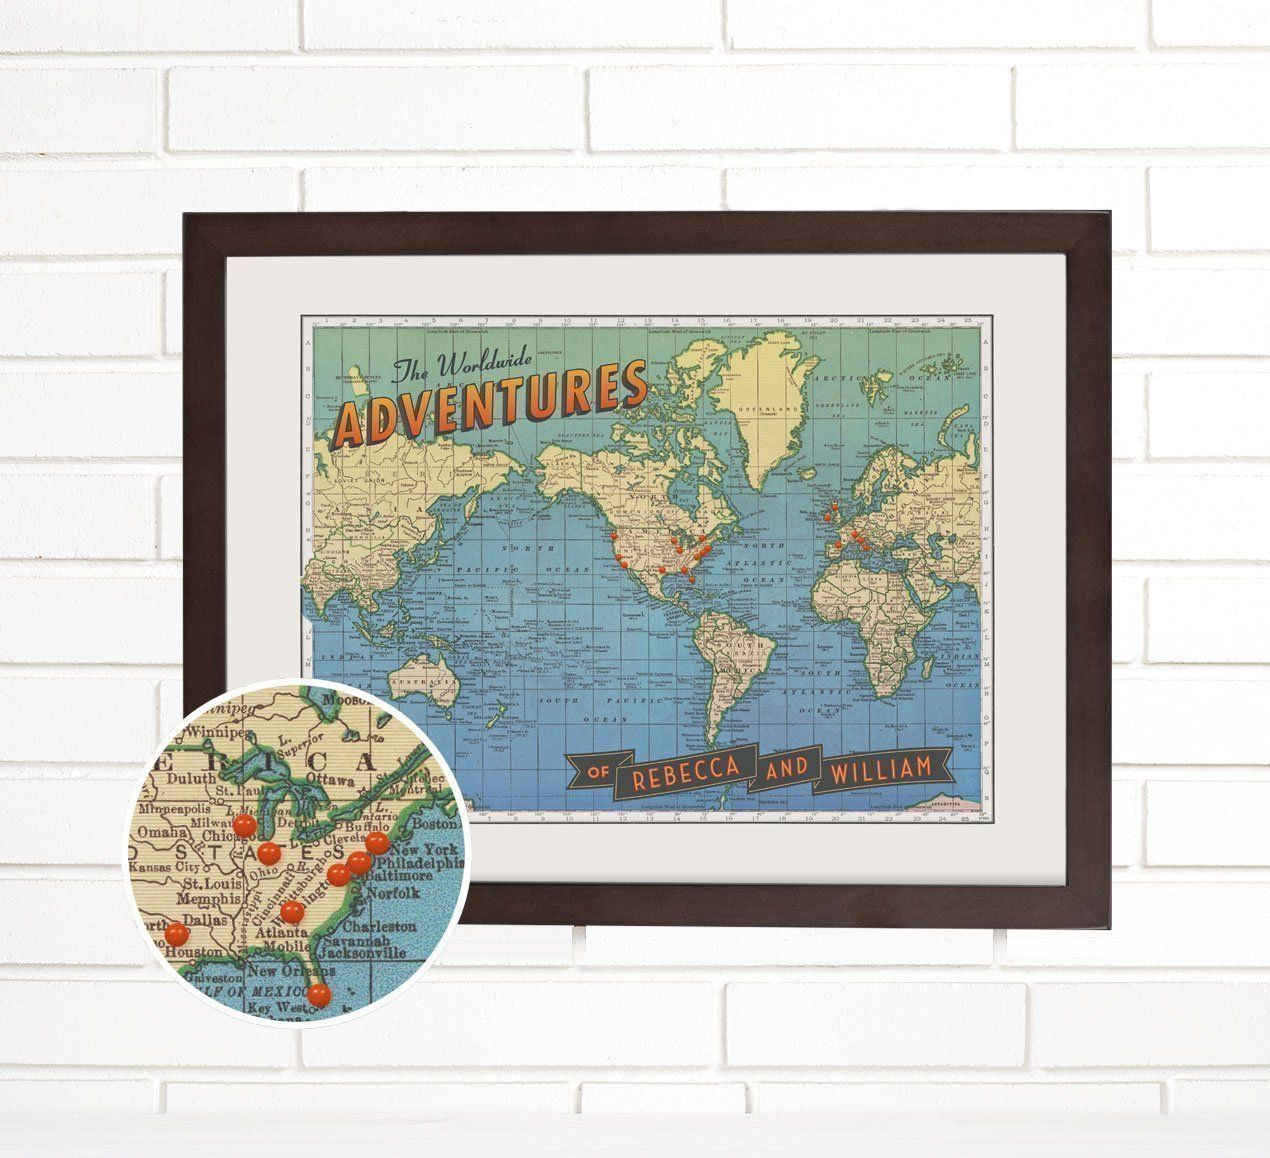 Amazon personalized worldwide adventures travel push pin map amazon personalized worldwide adventures travel push pin map handmade gumiabroncs Image collections